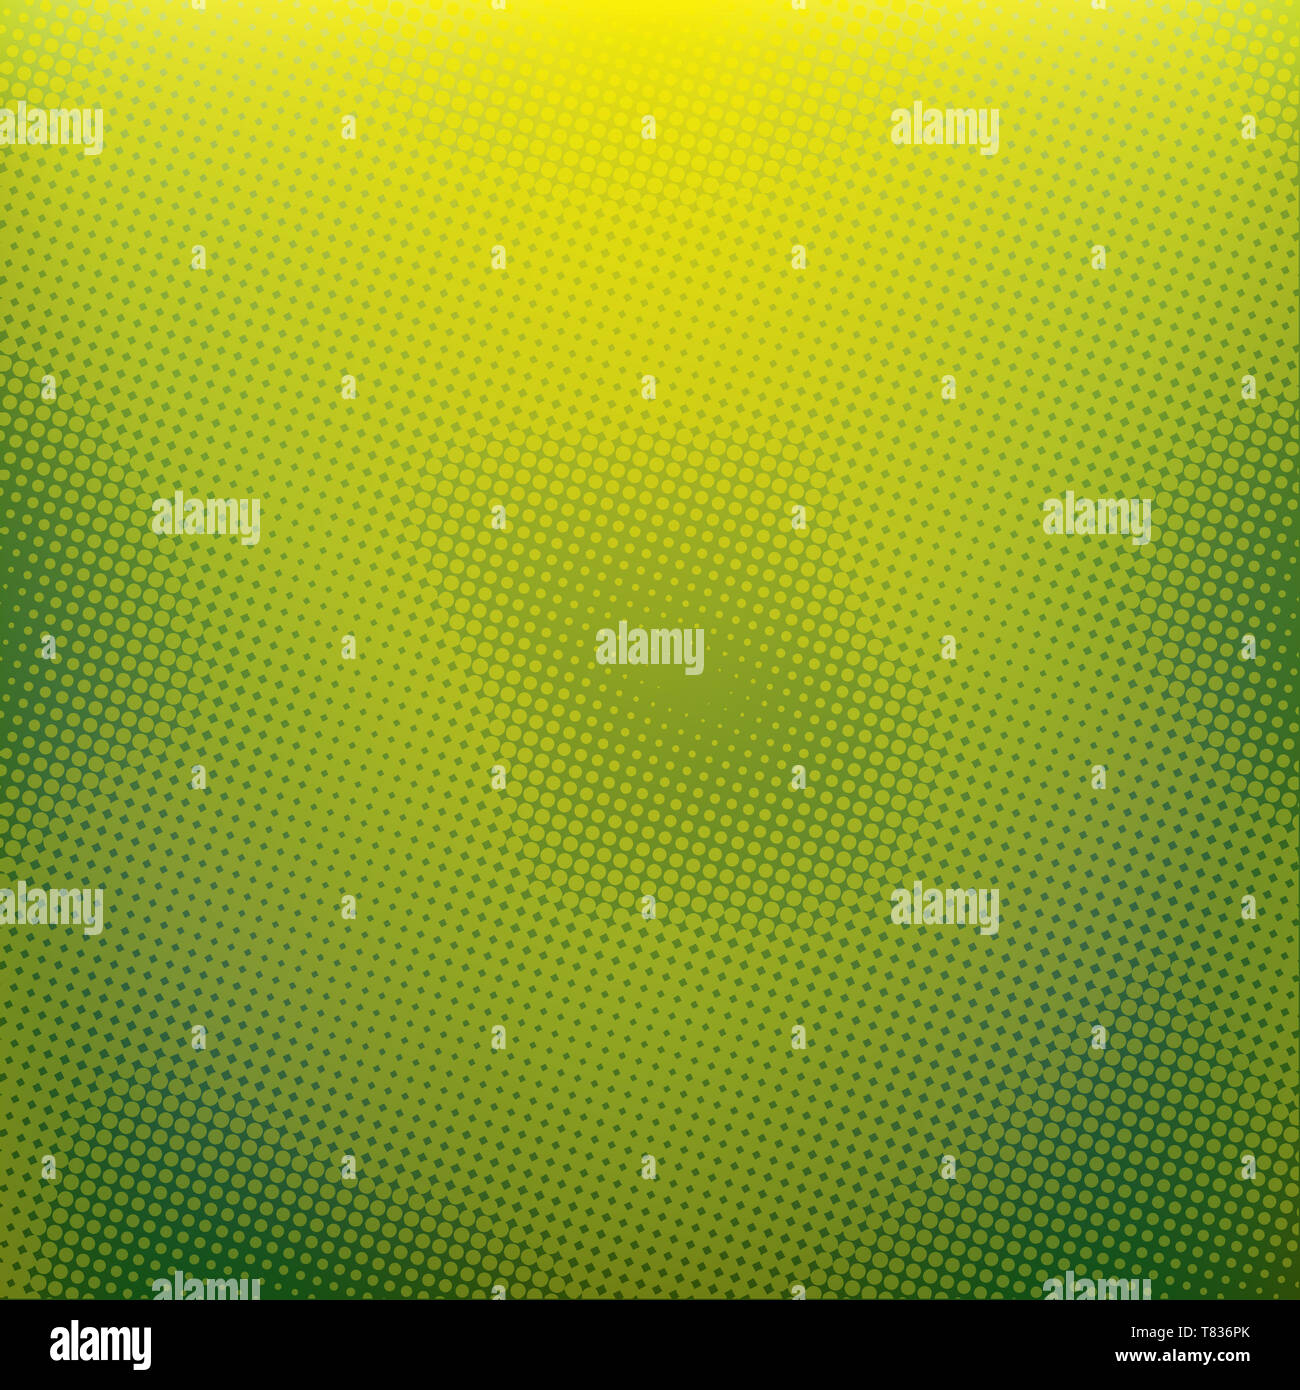 Green Color Blurred Background With Halftone Effect Overlay